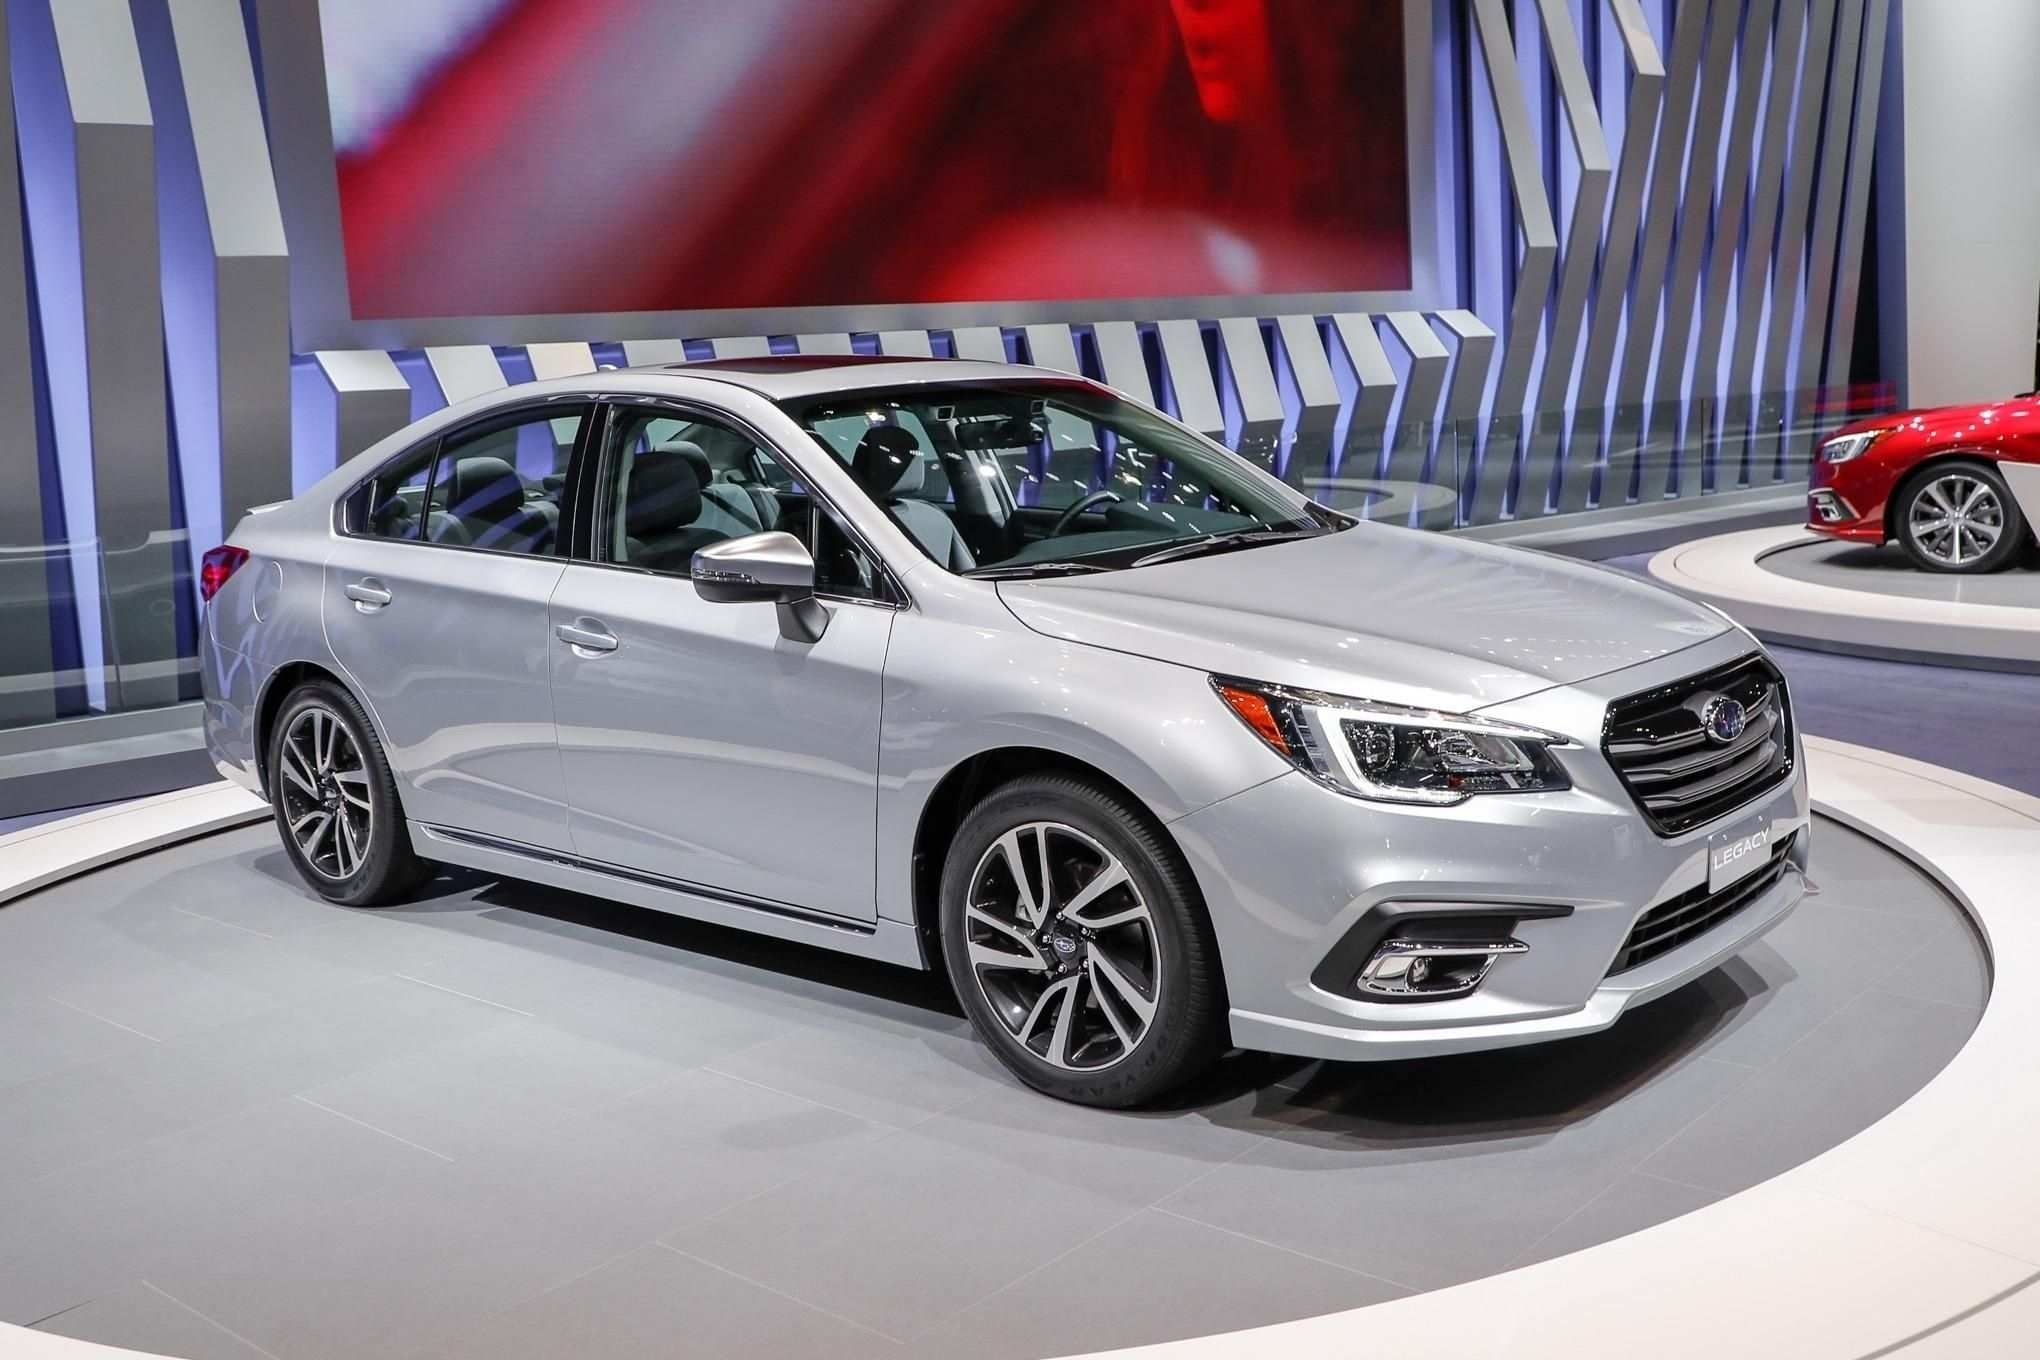 53 Concept of Best Subaru 2019 Legacy New Release Rumors for Best Subaru 2019 Legacy New Release